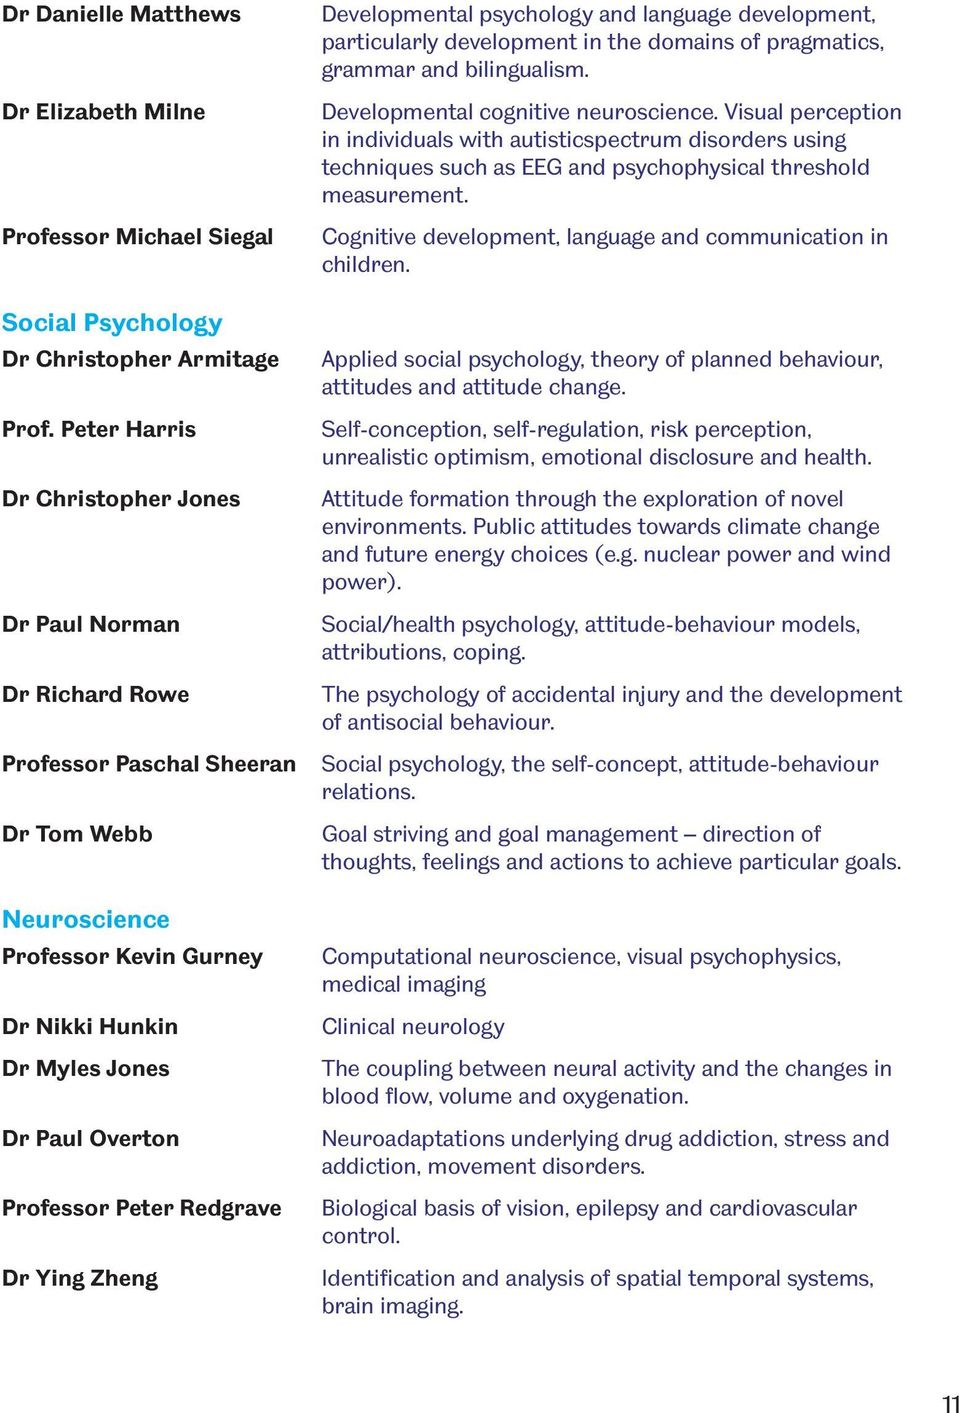 Peter Redgrave Dr Ying Zheng Developmental psychology and language development, particularly development in the domains of pragmatics, grammar and bilingualism. Developmental cognitive neuroscience.